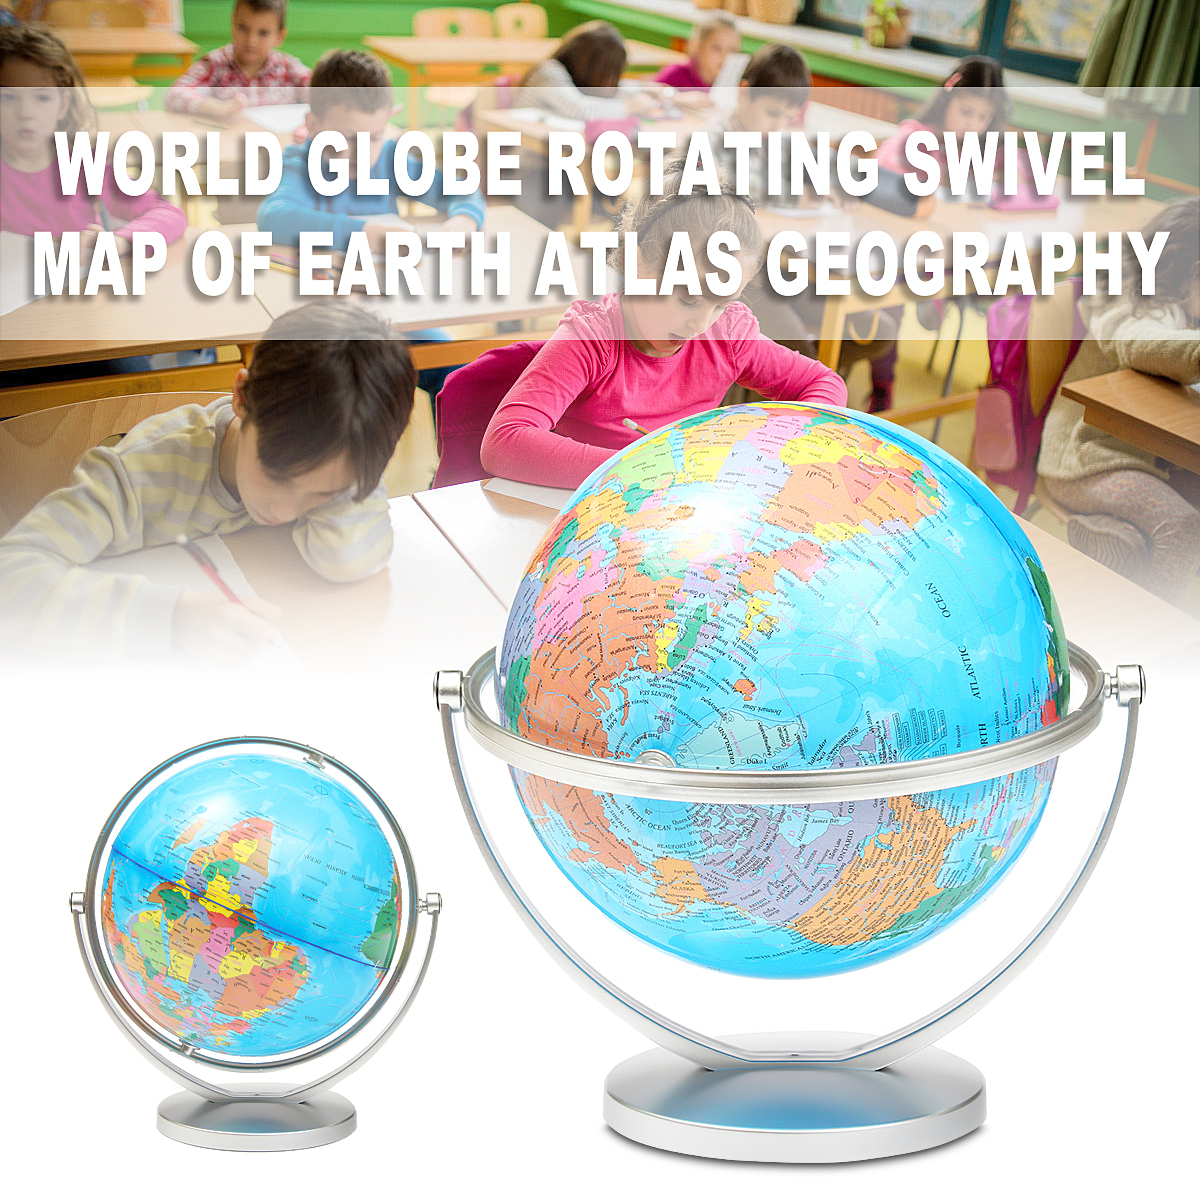 20cm World Map Terrestrial Globe Rotating Map of Earth Birthday Christmas Gift Home Office Decor Geography Educational Tool new led world map world globe rotating swivel map of earth geography globe figurines ornaments birthday gift home office decor